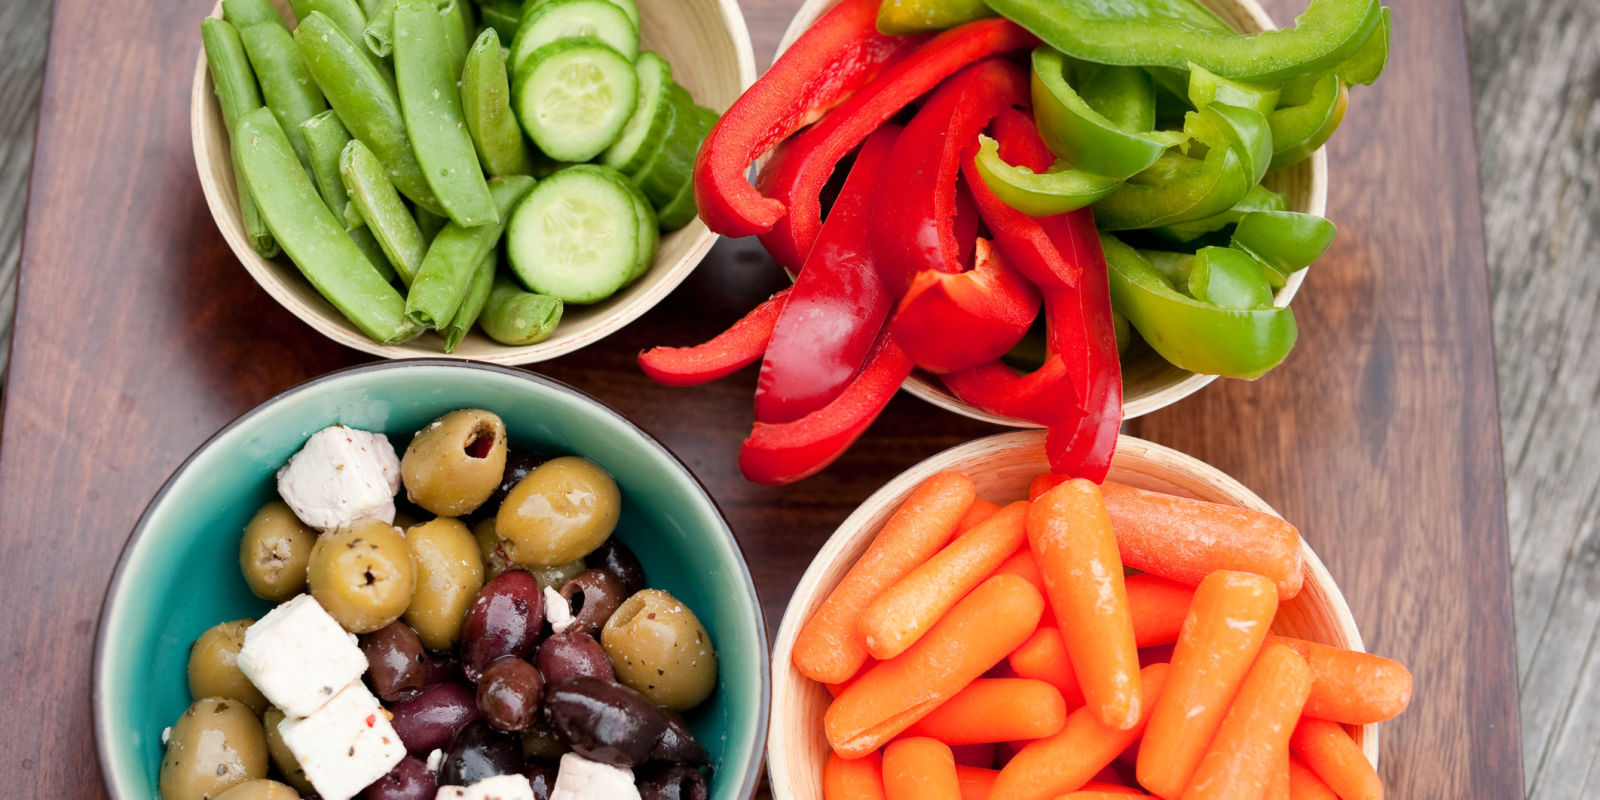 7 Fun And Healthy Snacks For Kids And Adults